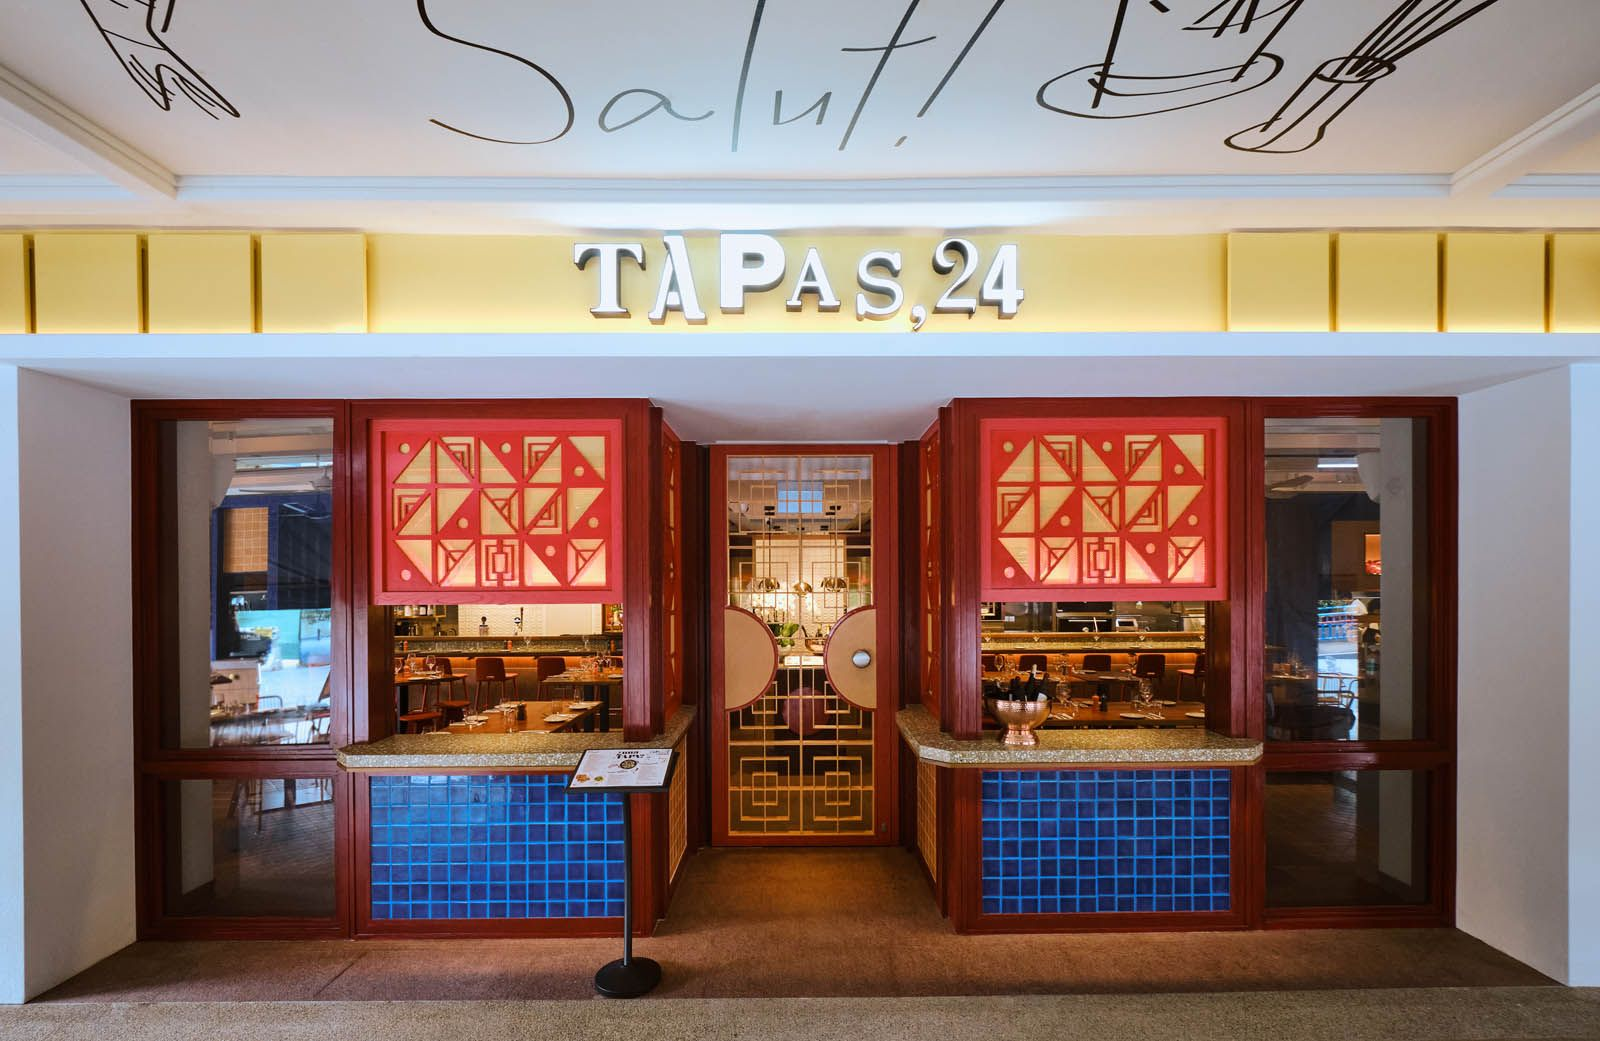 Tapas 24 is the newest restaurant in the buzzy Robertson Quay district